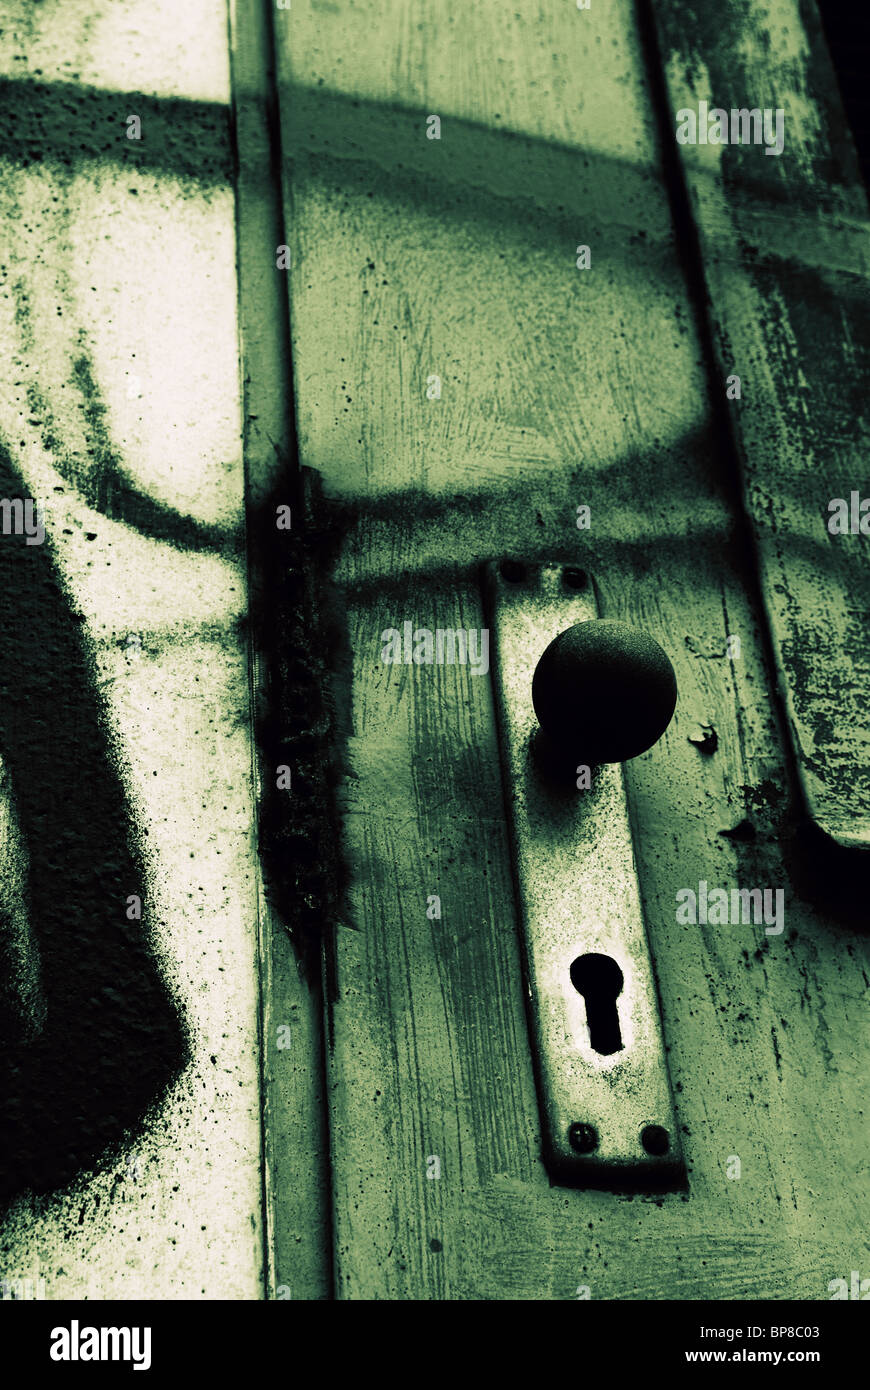 Grungy door handle - Stock Image